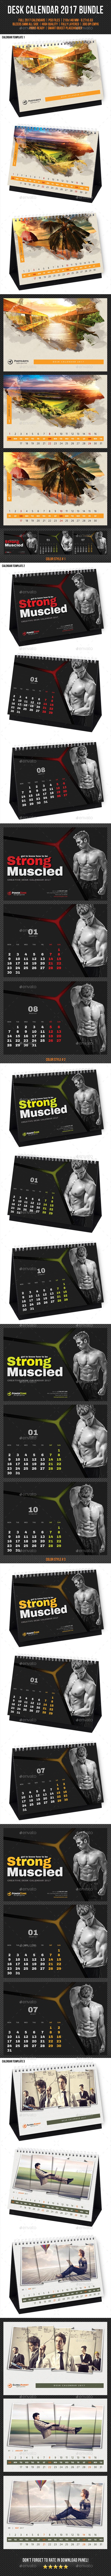 3 in 1 Creative Desk Calendar 2017 Bundle 07 - #Calendars #Stationery Download here: https://graphicriver.net/item/3-in-1-creative-desk-calendar-2017-bundle-07/19319087?ref=alena994